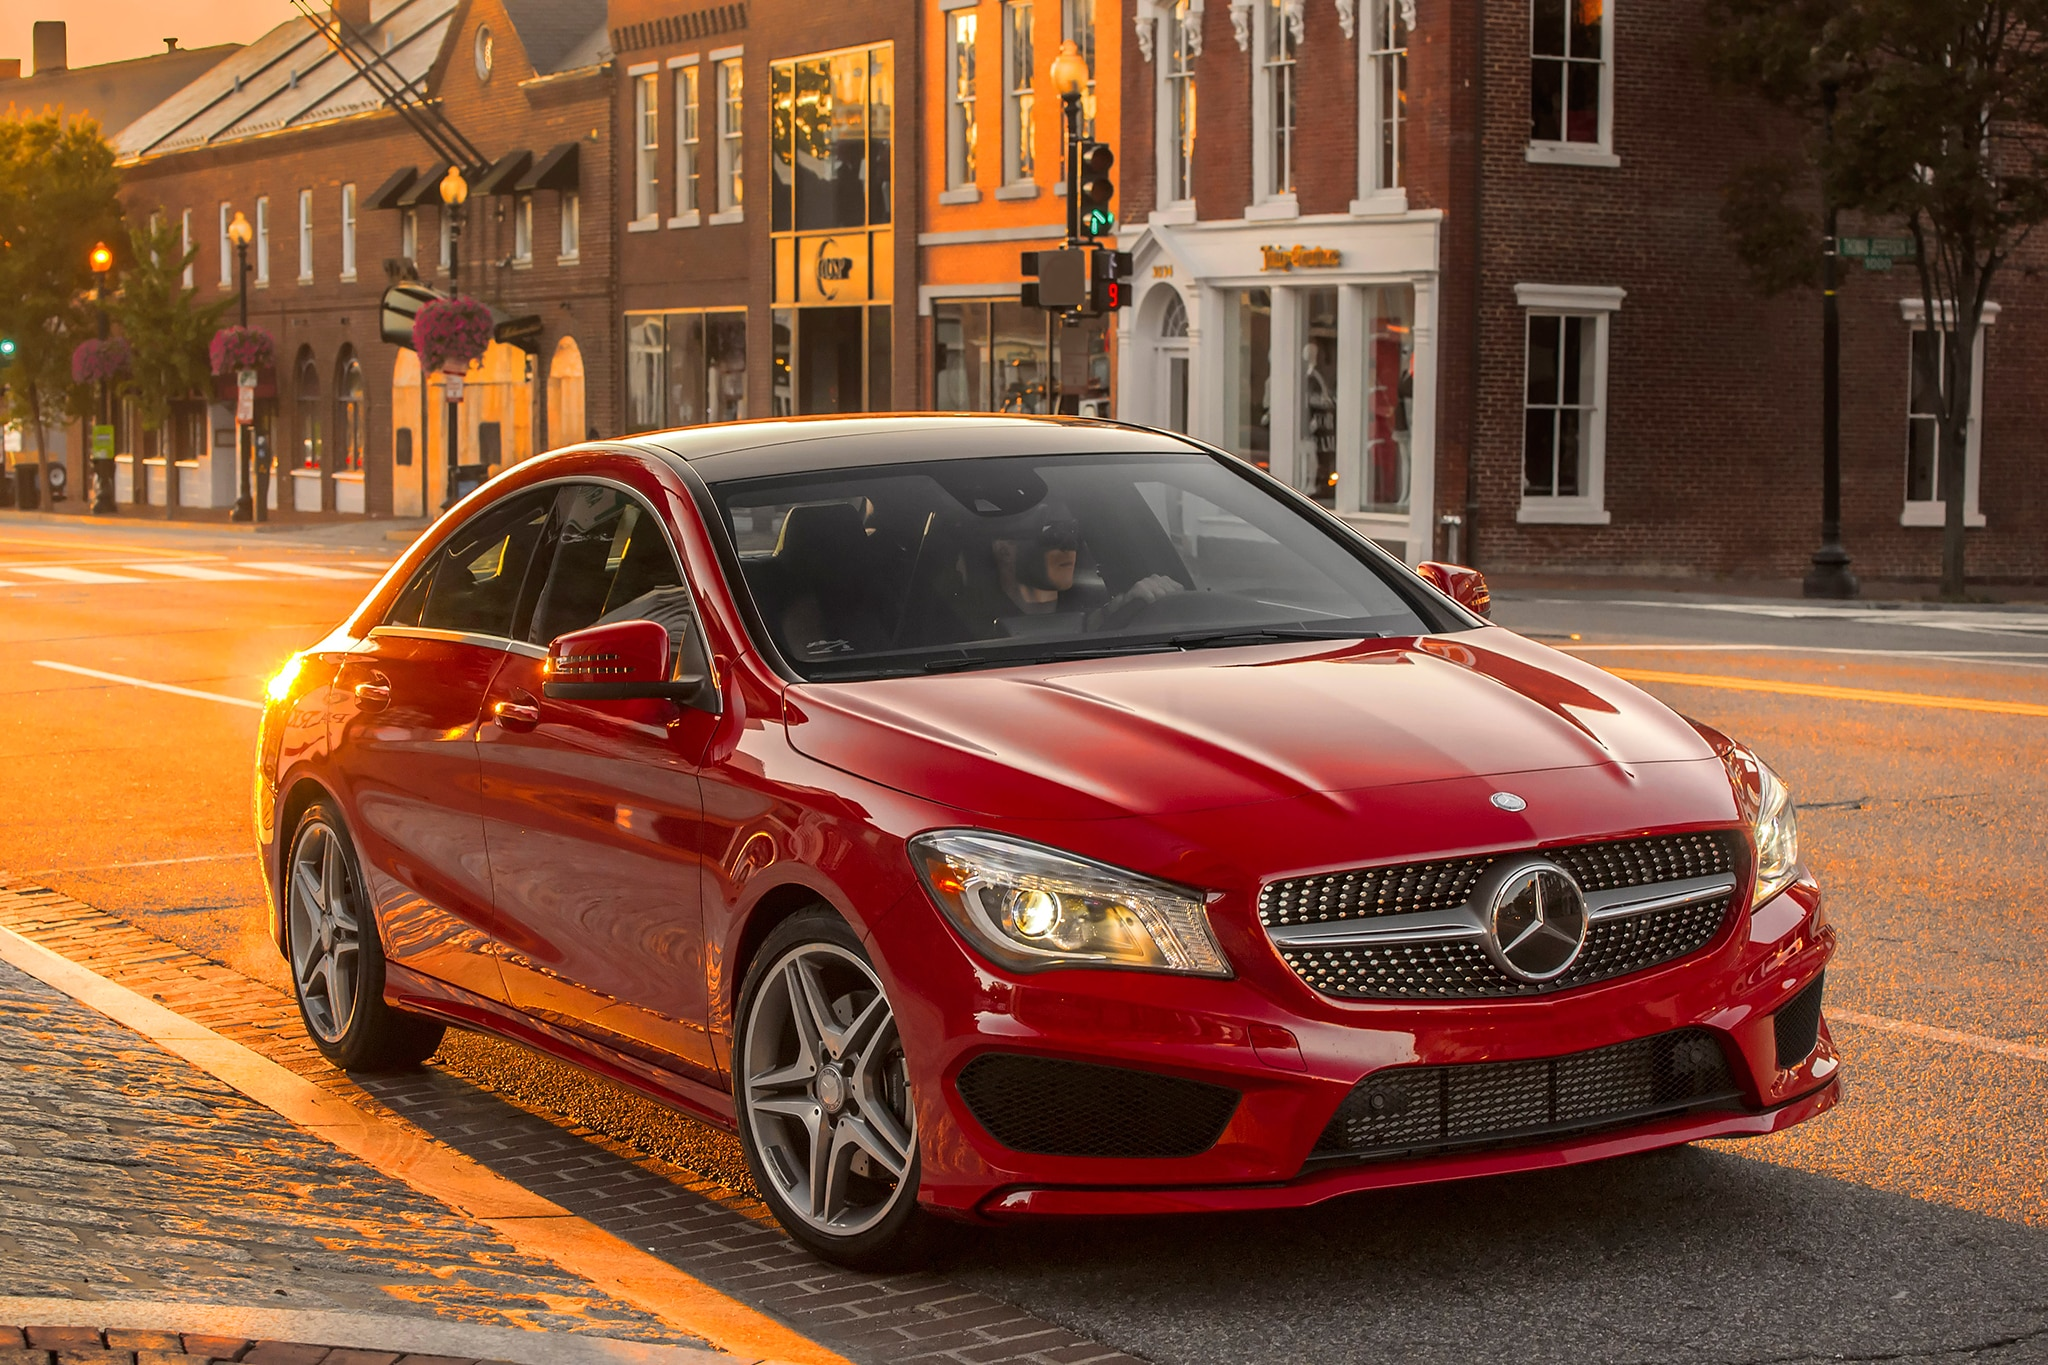 2015 mercedes benz cla price increases 1 600 to 32 425 for 2015 mercedes benz cla 250 price